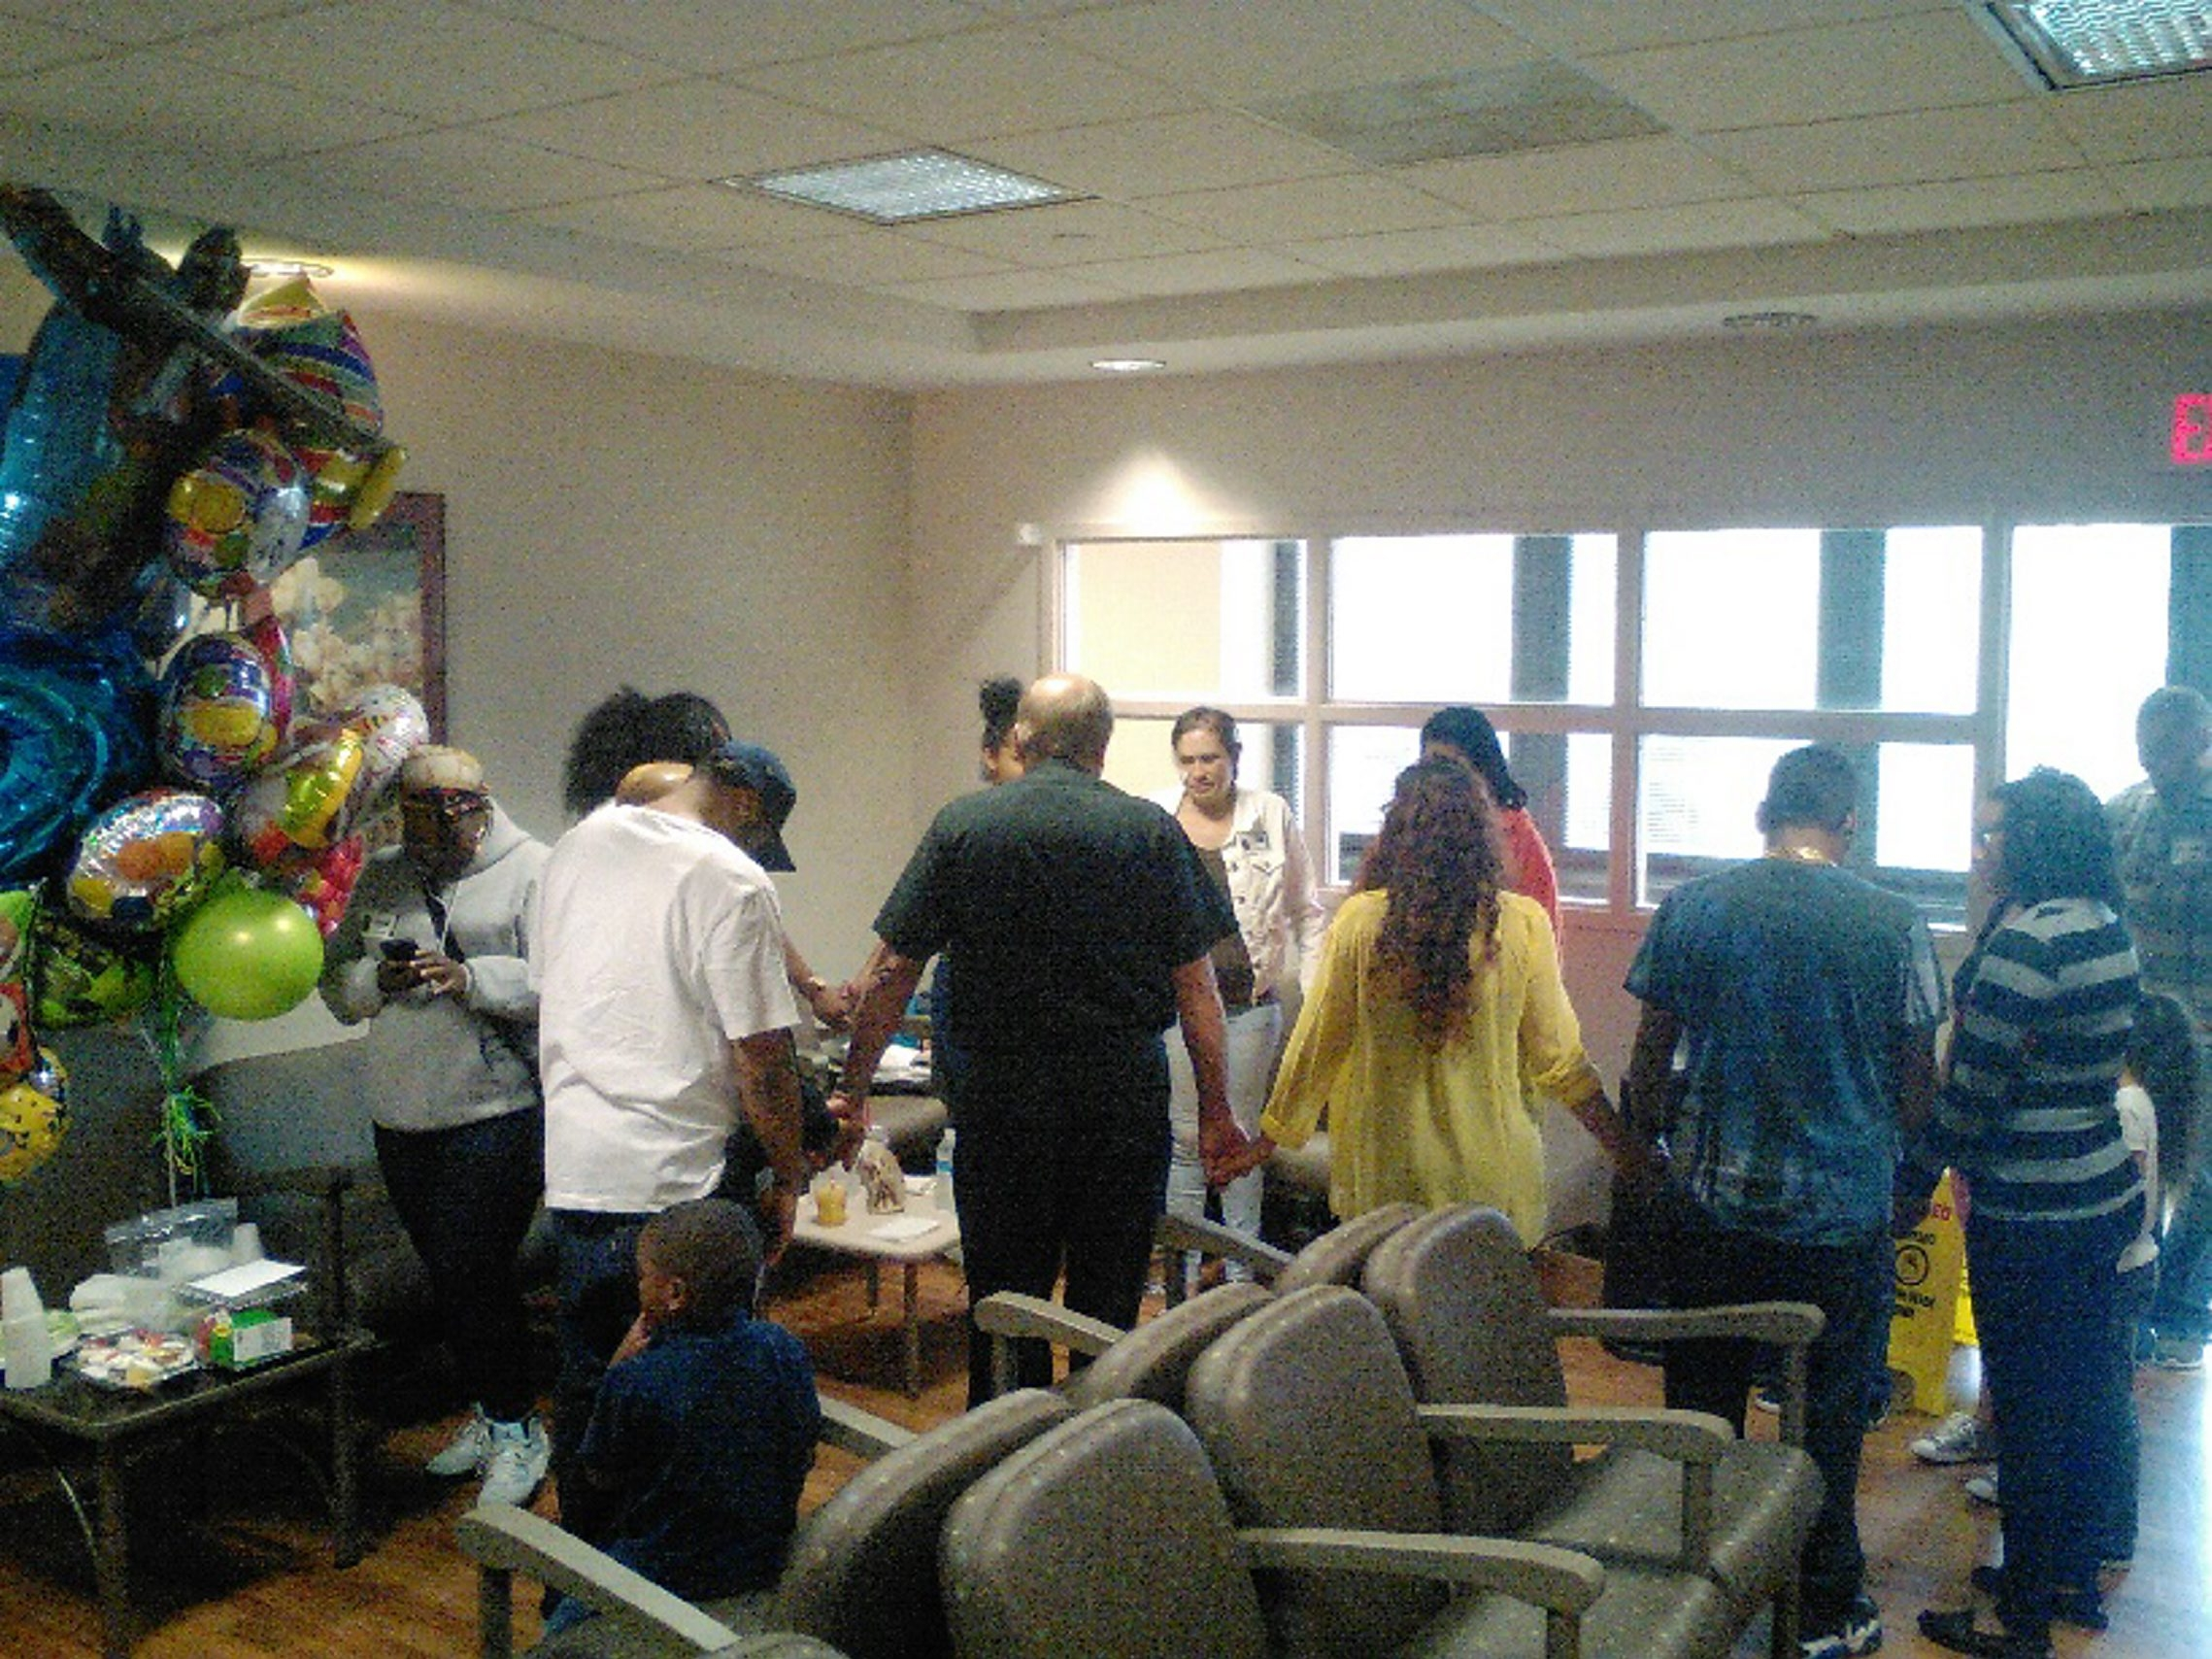 Above, relatives hold hands and pray for shooting victim Juan Rodriguez, inset left, in the intensive care unit at Erie County Medical Center on Friday, the boy's 12th birthday.